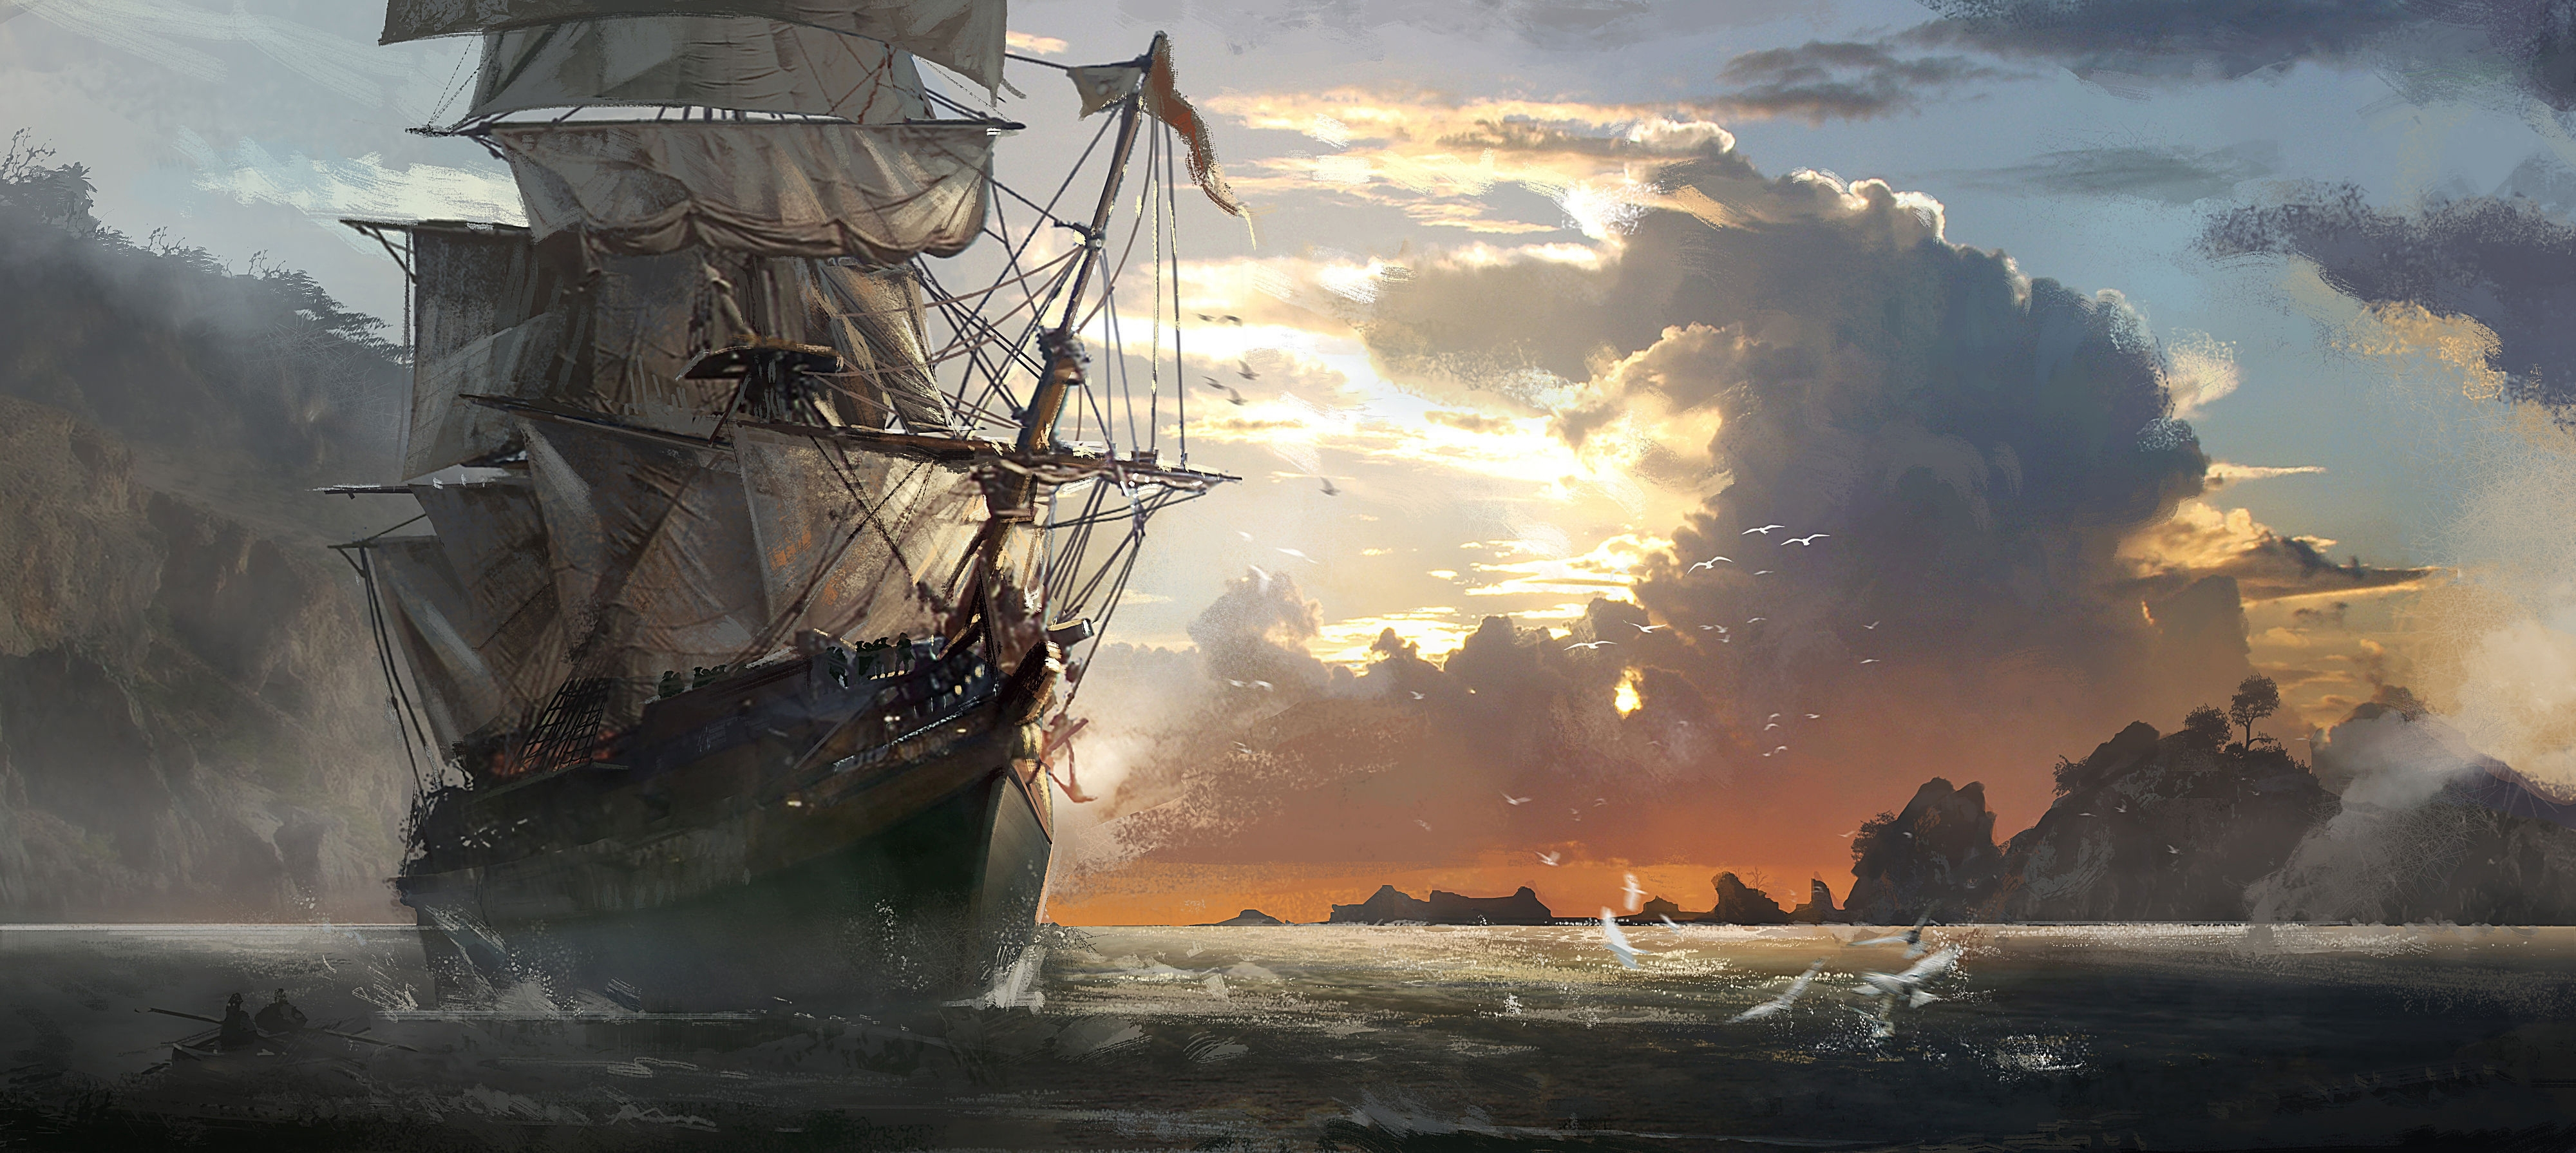 assassin's creed iv black flag full hd fond d'écran and arrière-plan